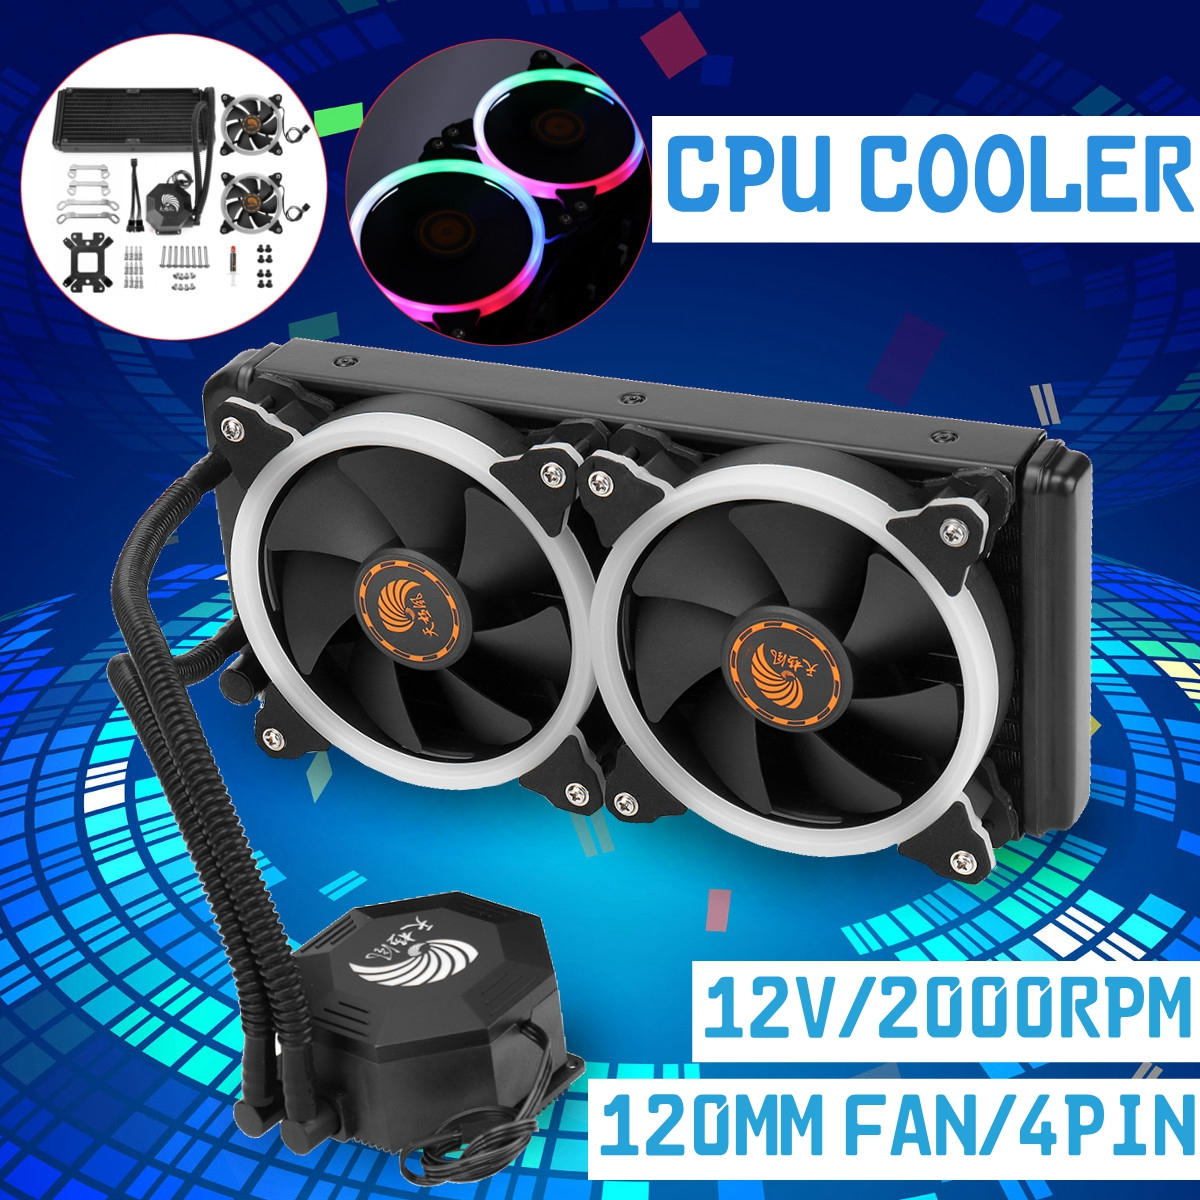 12V 2000RPM All-in-one LED Computer CPU Liquid Cooling Kit Radiator 2x120mm Fan 4Pin LED Light PC Case CPU Cooling Dual Fan 12v 1800rpm 3 pin pc cpu cooling fan heatsinks cpu radiator computer case fan for desktop 80mmx80mmx15mm